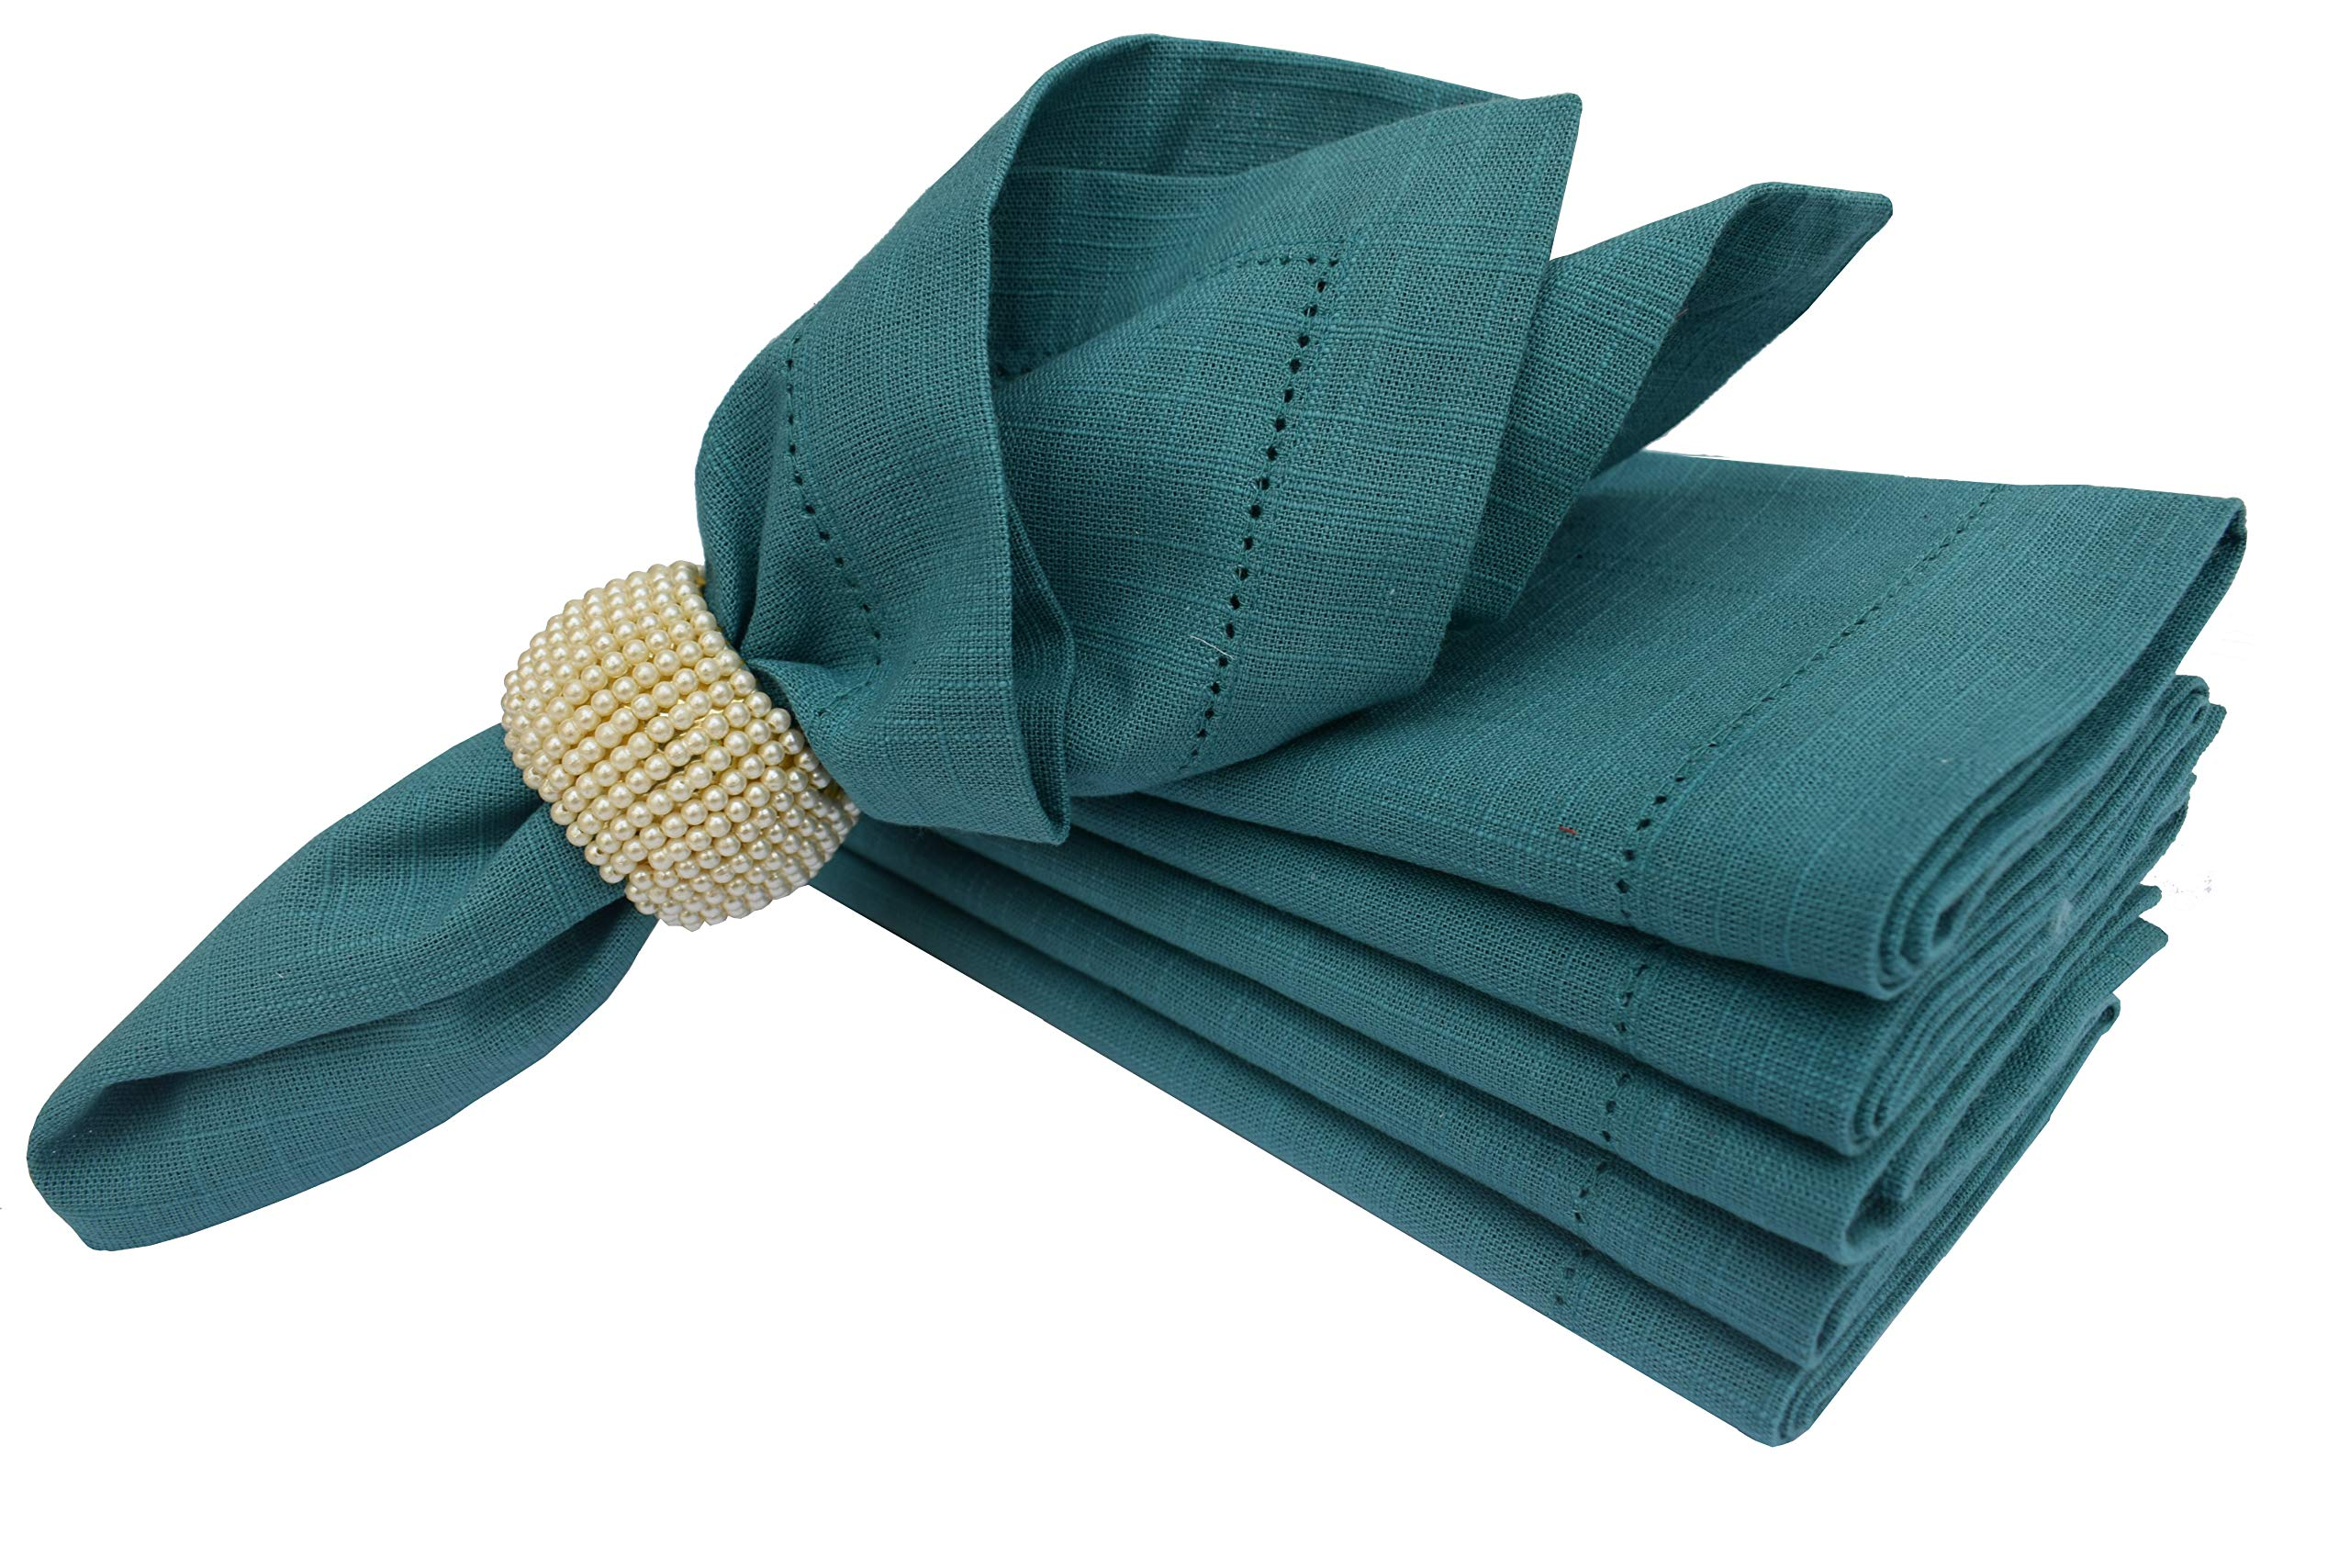 Linen Clubs 6 Pack Slub Cotton Dinner Napkins Teal Color,18x18 Inch with Mitered Corner Finish & Hemstitched Detailing Offered